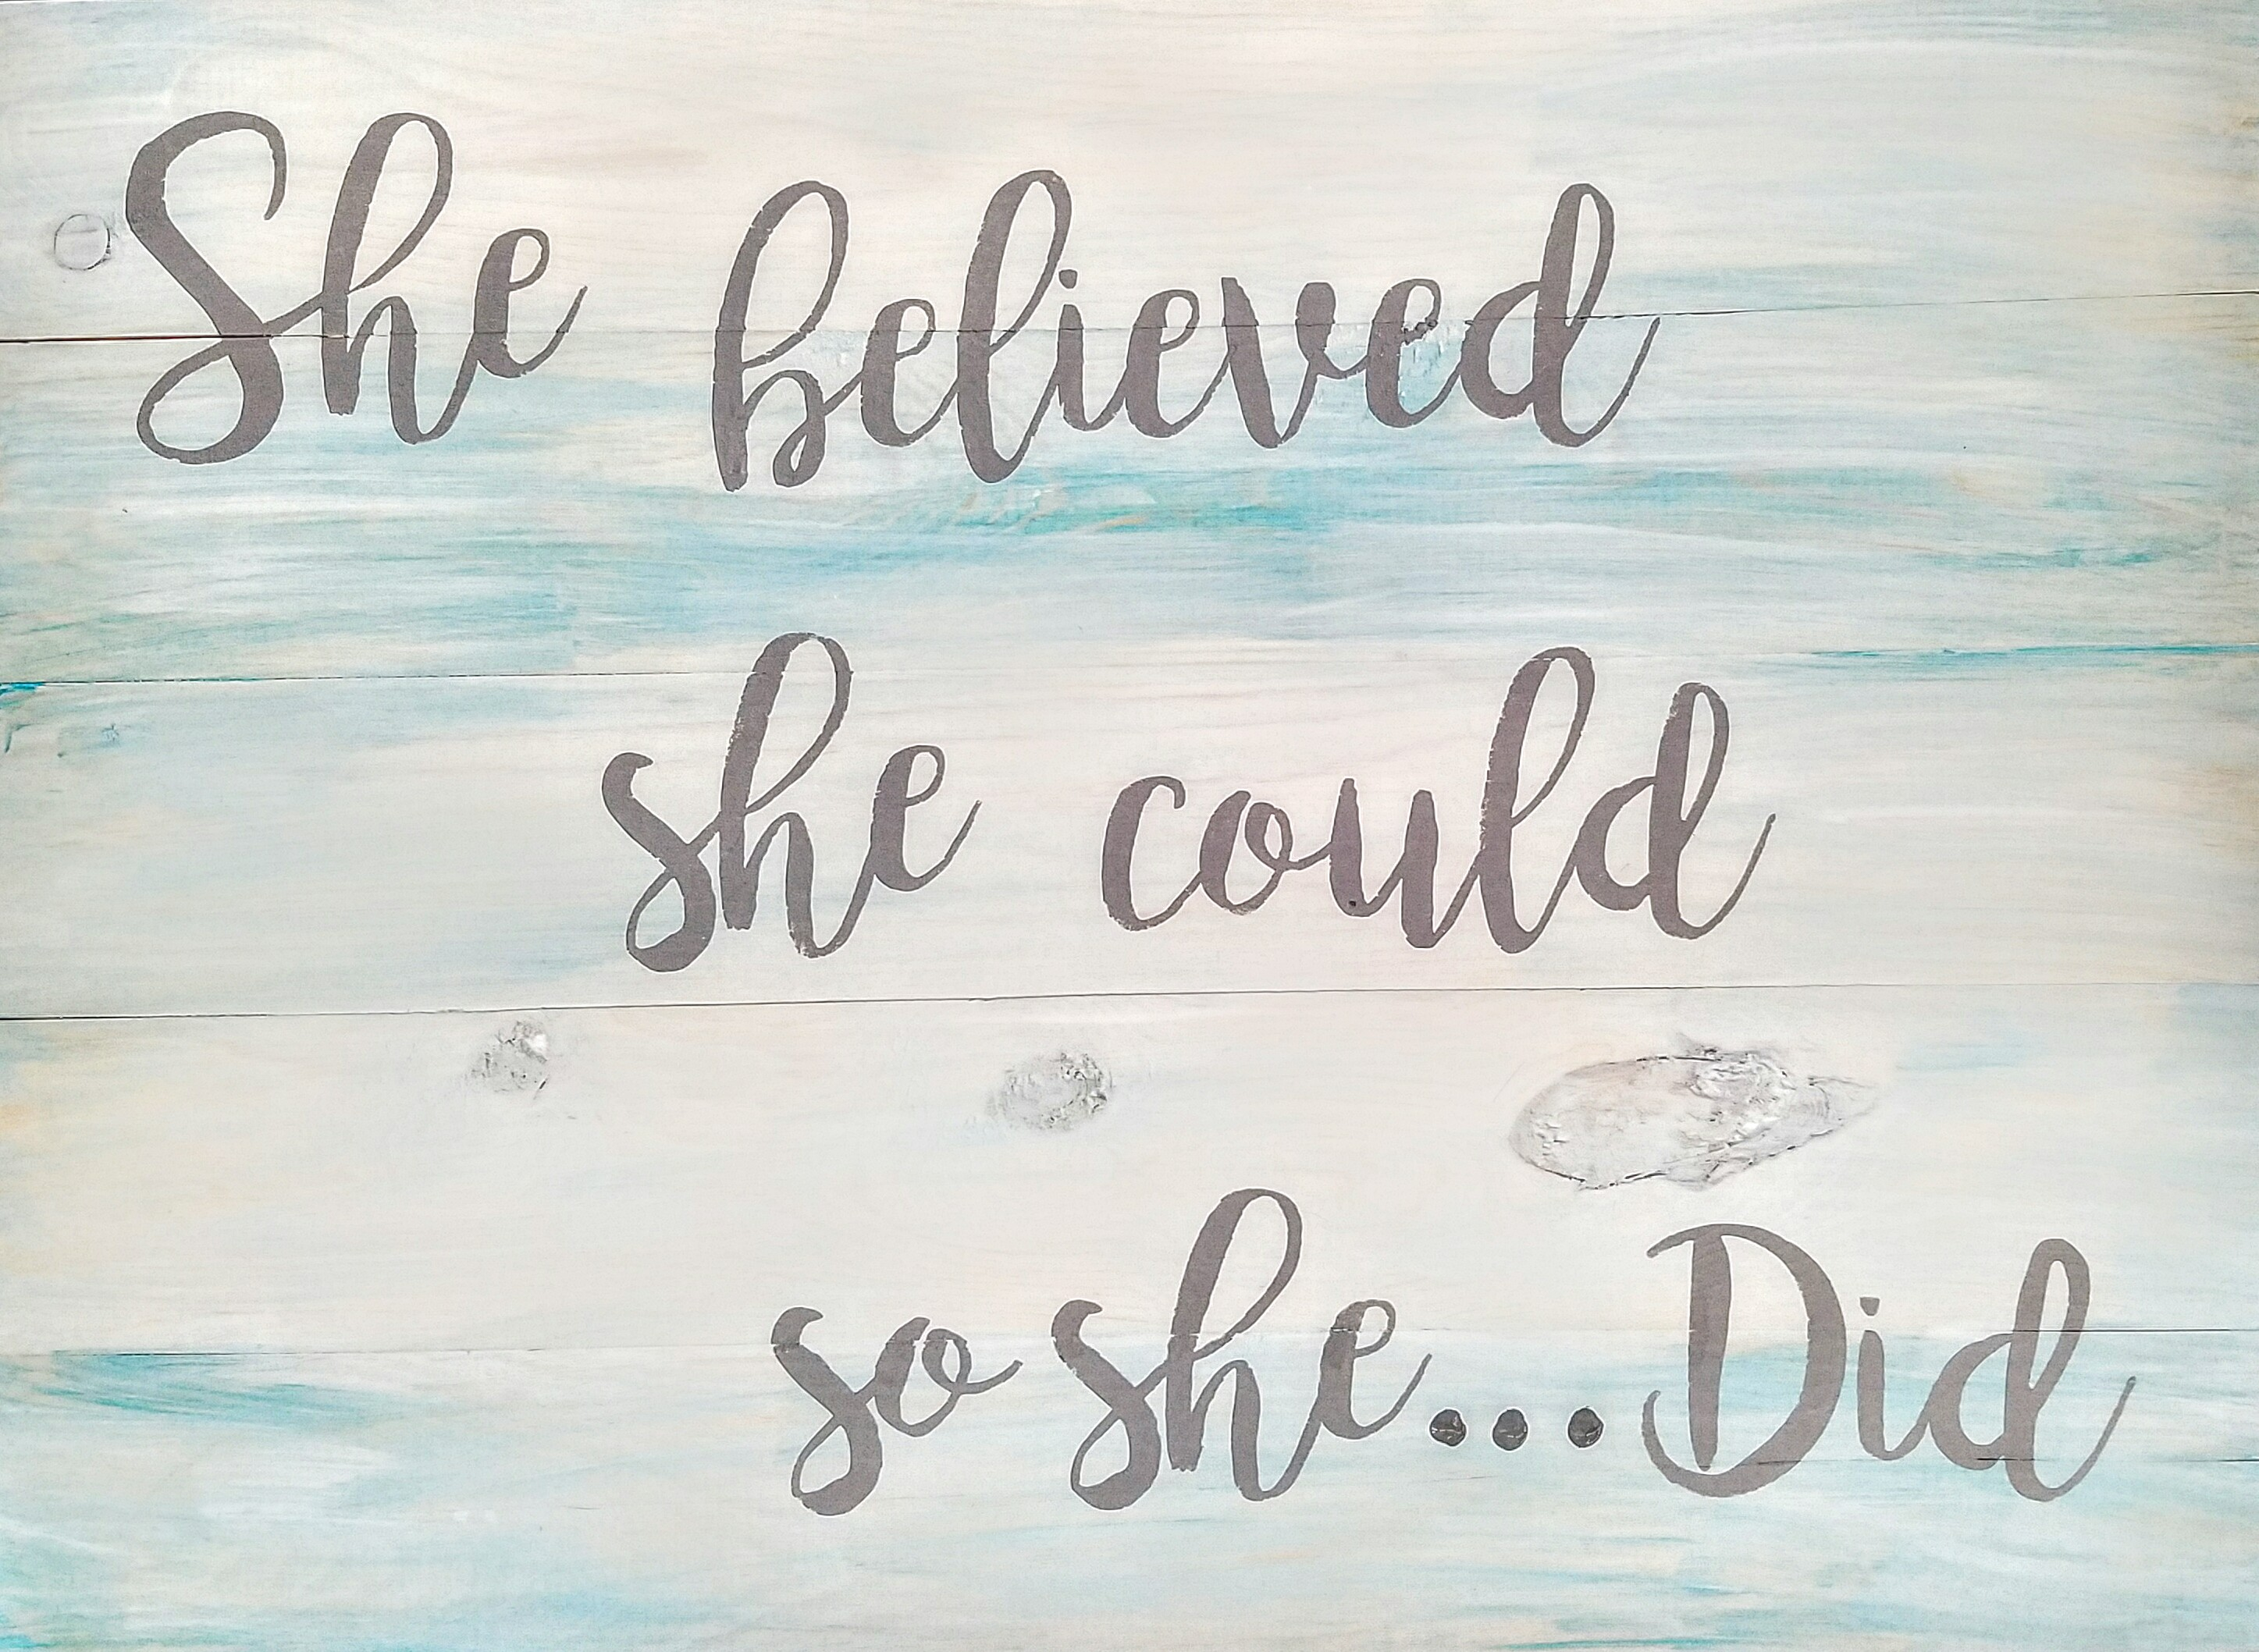 She Believed ....